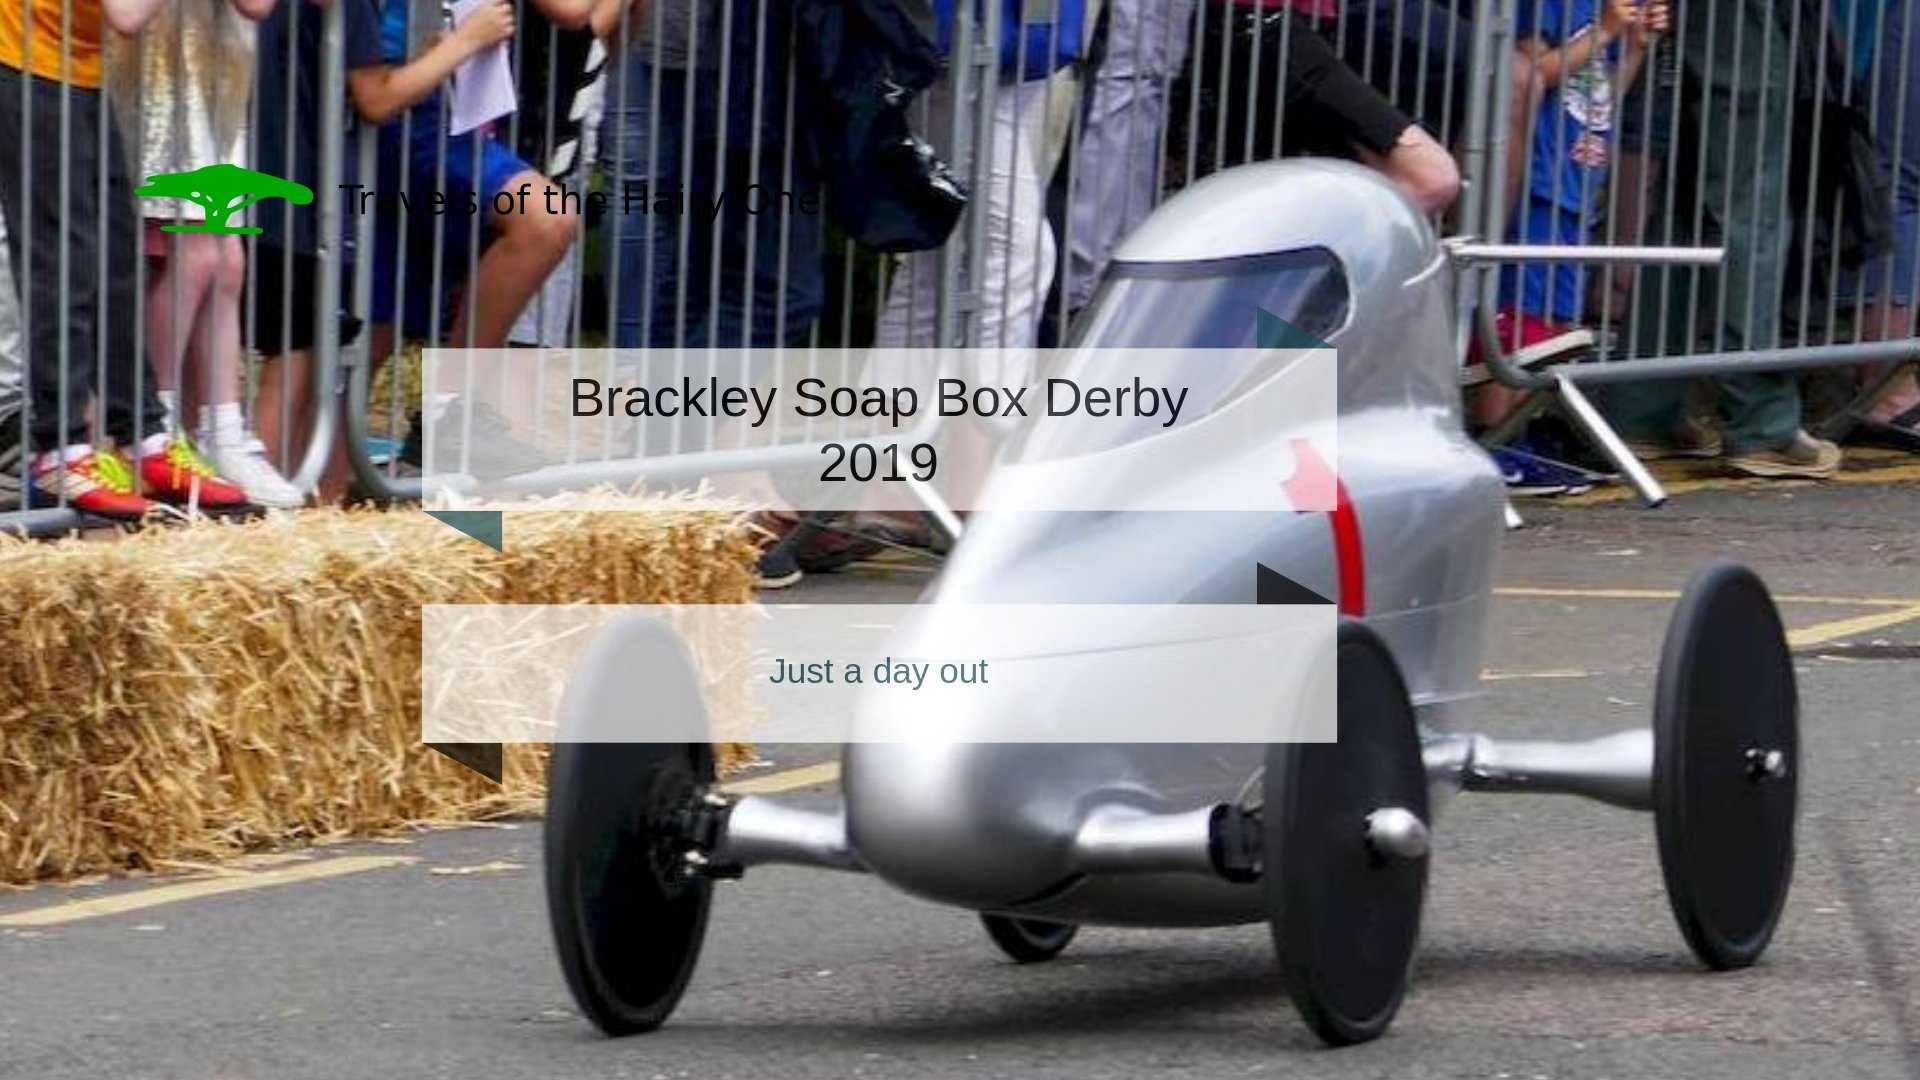 Fun on the High Street at the Brackley Soap Box derby